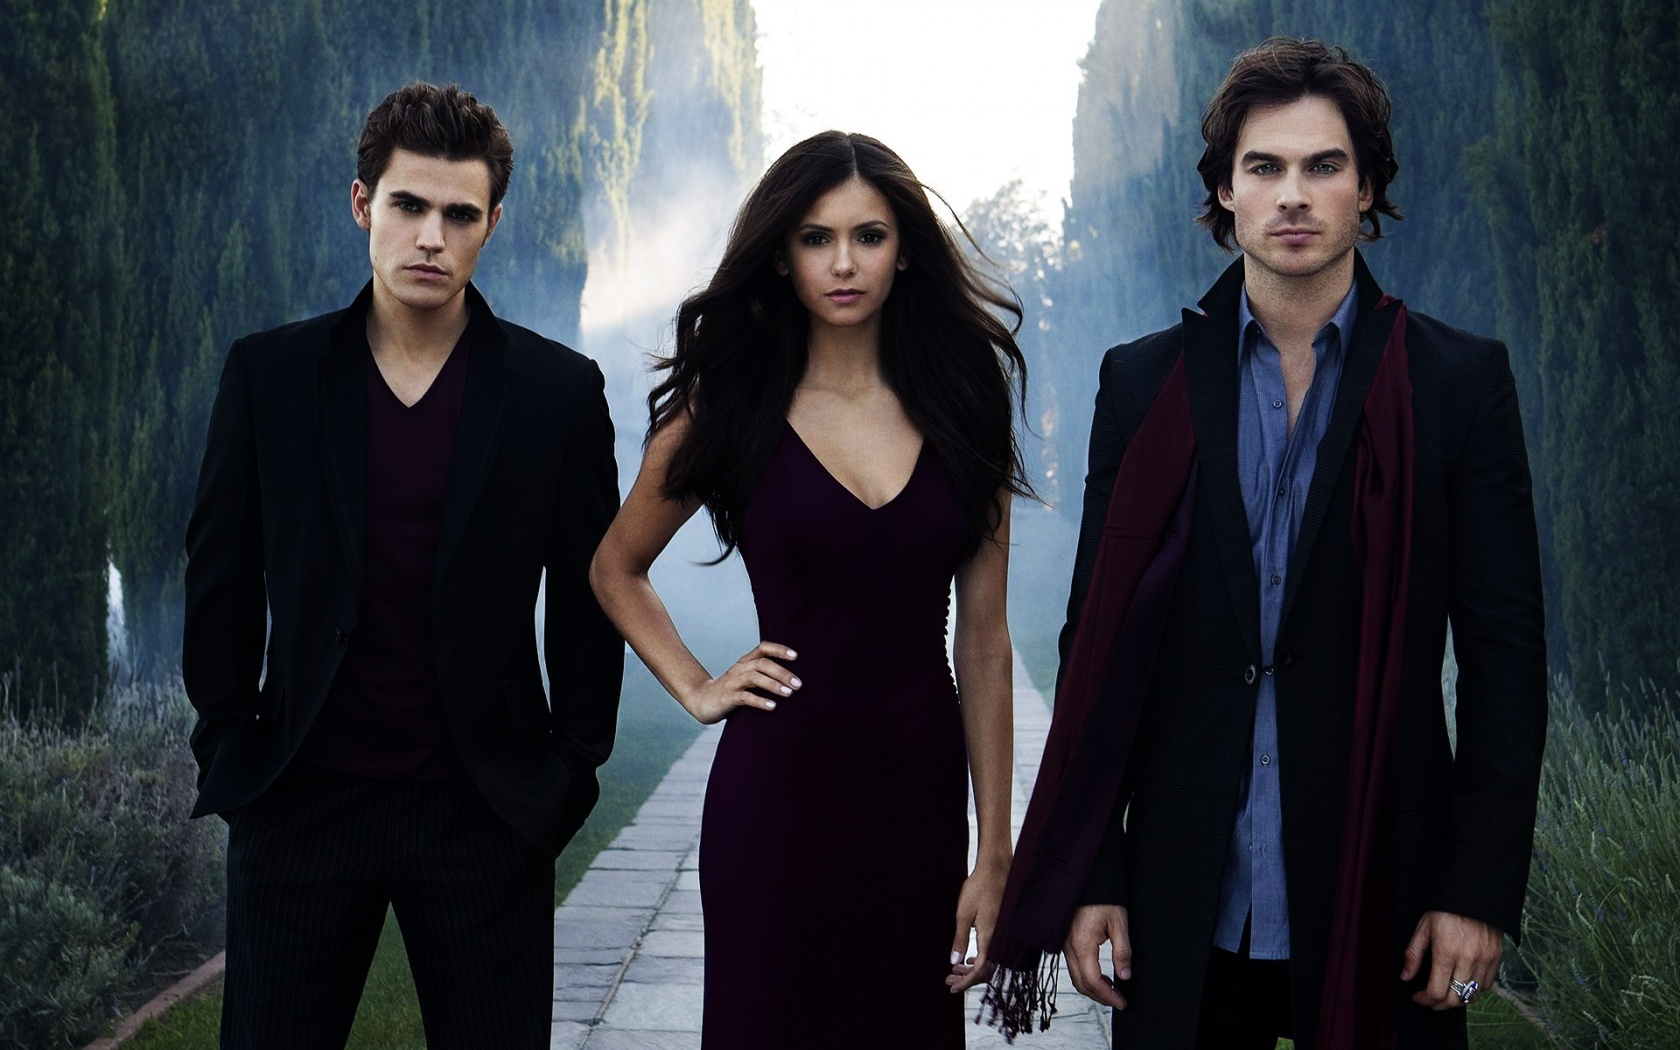 the_vampire_diaries_1680x1050-do-you-like-season-5-of-tvd-so-far